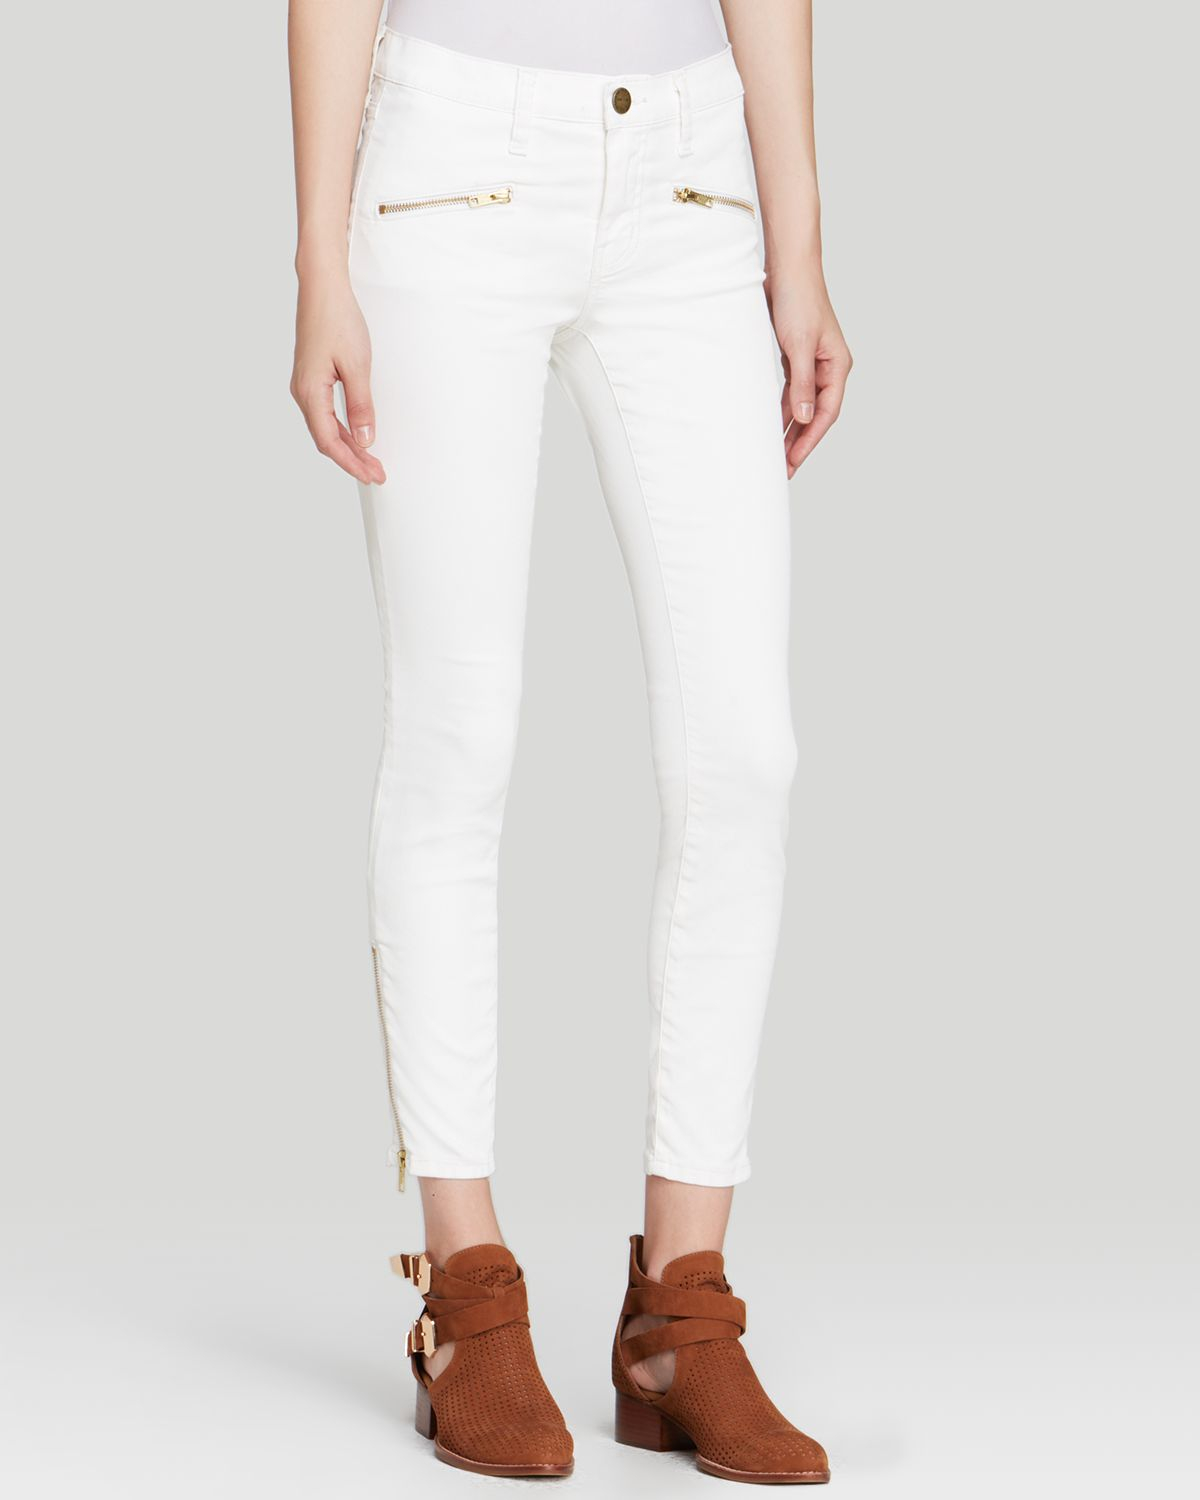 Current/elliott Jeans - The Soho Zip Stiletto In Dirty White ...